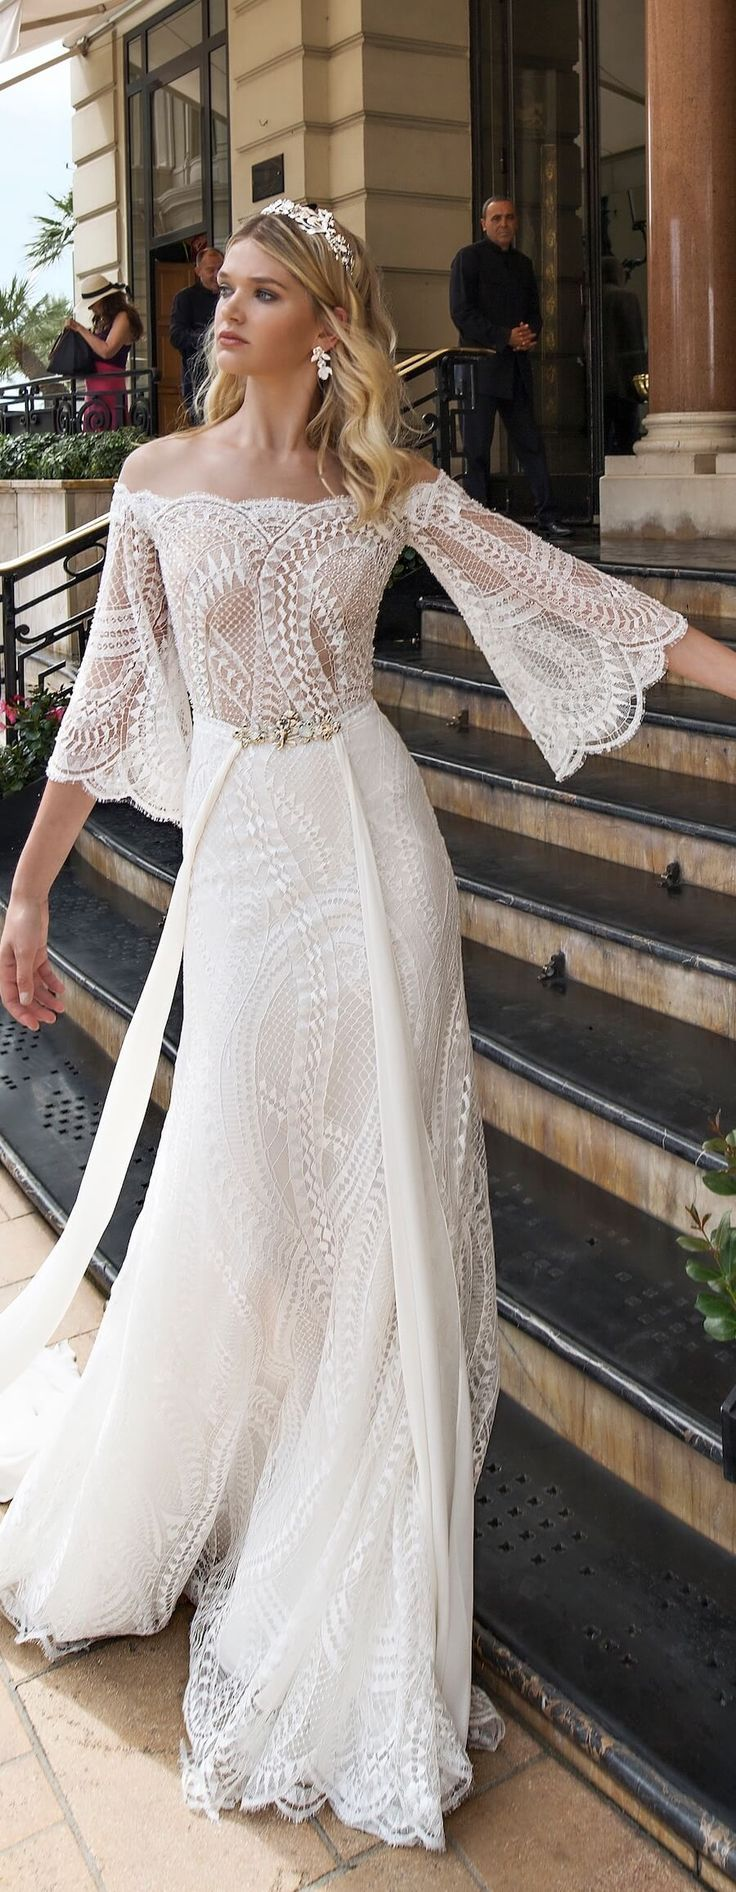 30 Bohemian Wedding Dresses That Will Take Your Breath Away Long Sleeve Wedding Dress Lace Wedding Dresses Summer Wedding Dress [ 1892 x 736 Pixel ]